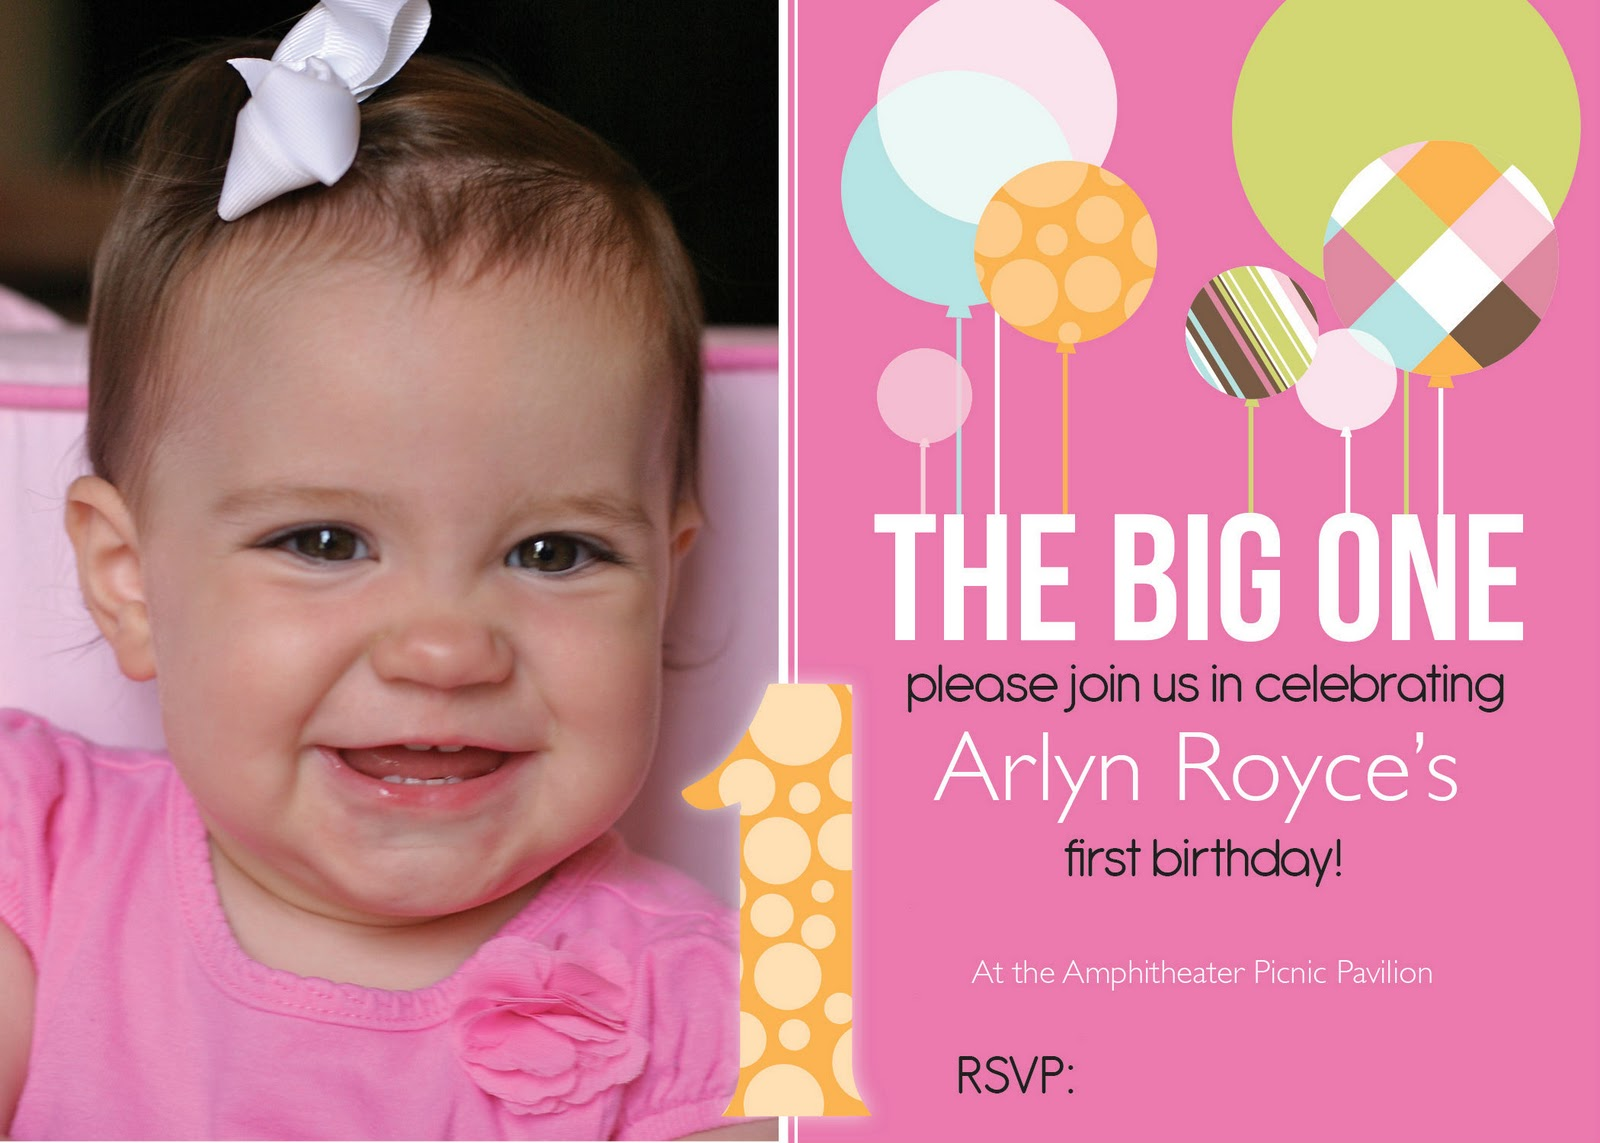 1st birthday banner design ; arlyn_5x7+edit